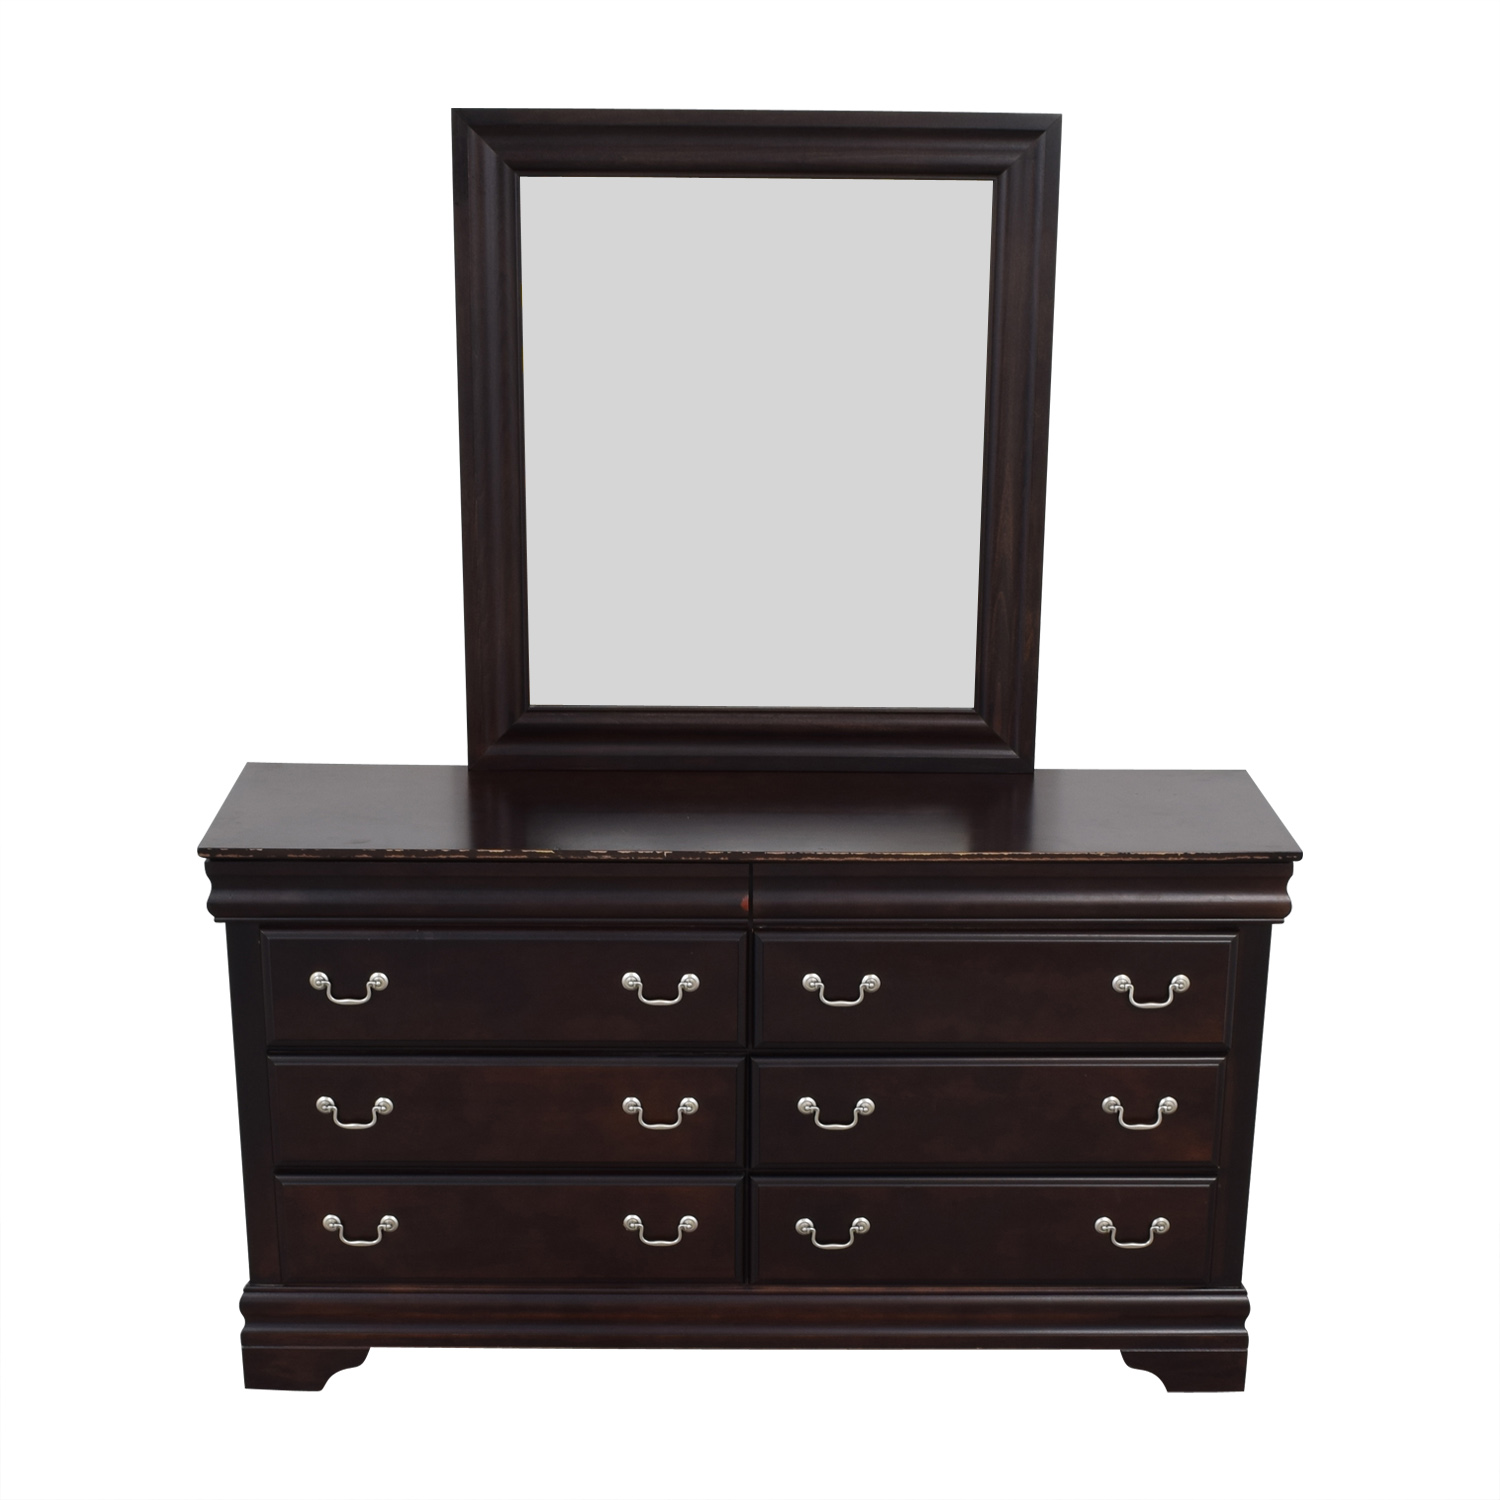 Vaughn-Bassett Dresser with Mirror / Dressers